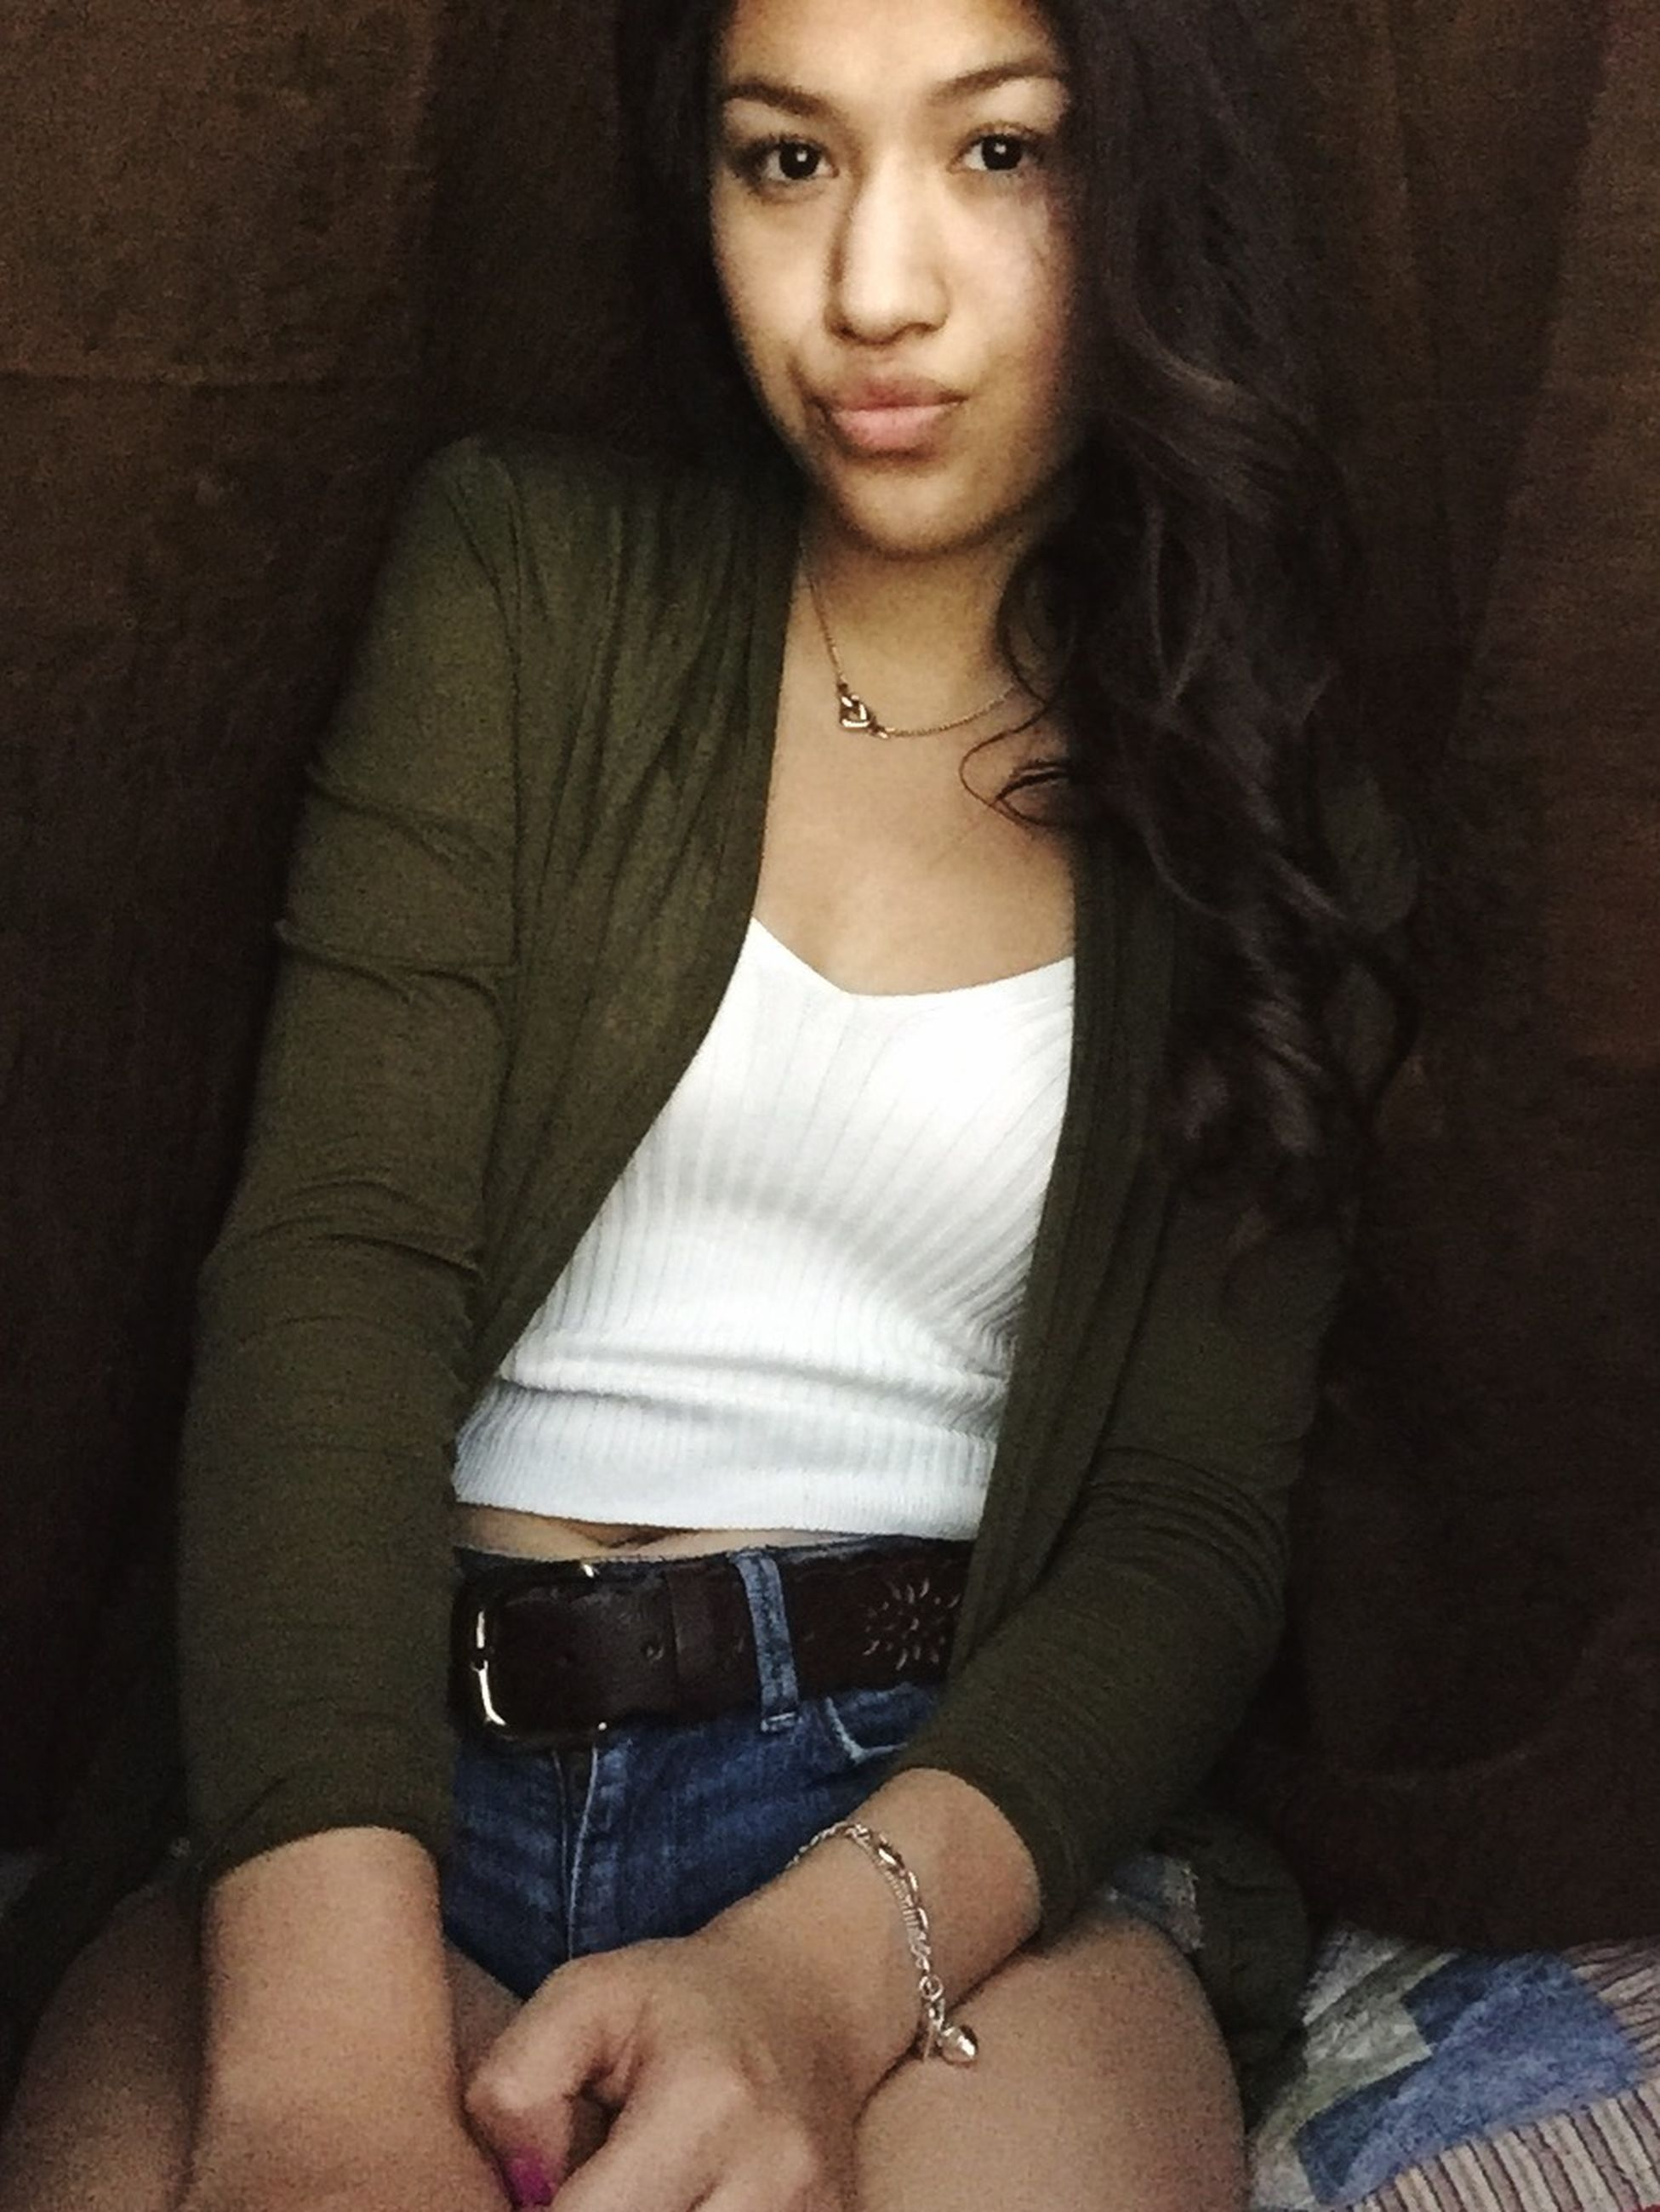 young adult, young women, lifestyles, indoors, front view, person, portrait, long hair, looking at camera, beauty, casual clothing, leisure activity, fashion, sensuality, femininity, black hair, standing